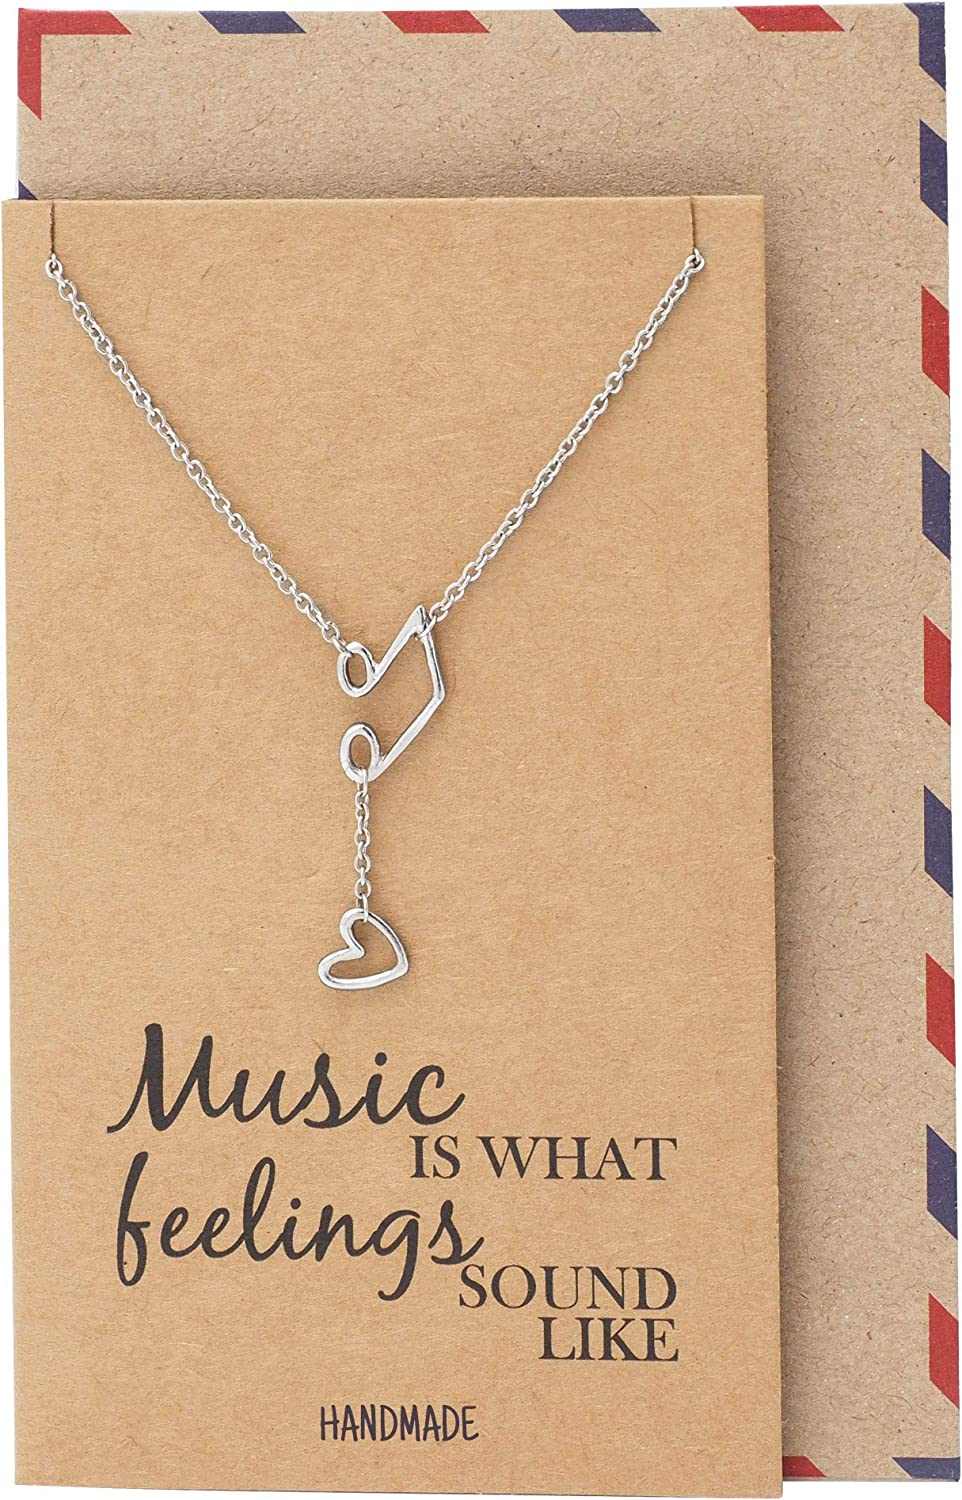 Quan Jewelry Music Note Treble Clef Necklace, Musical Jewelry Gifts for Women with Greeting Card